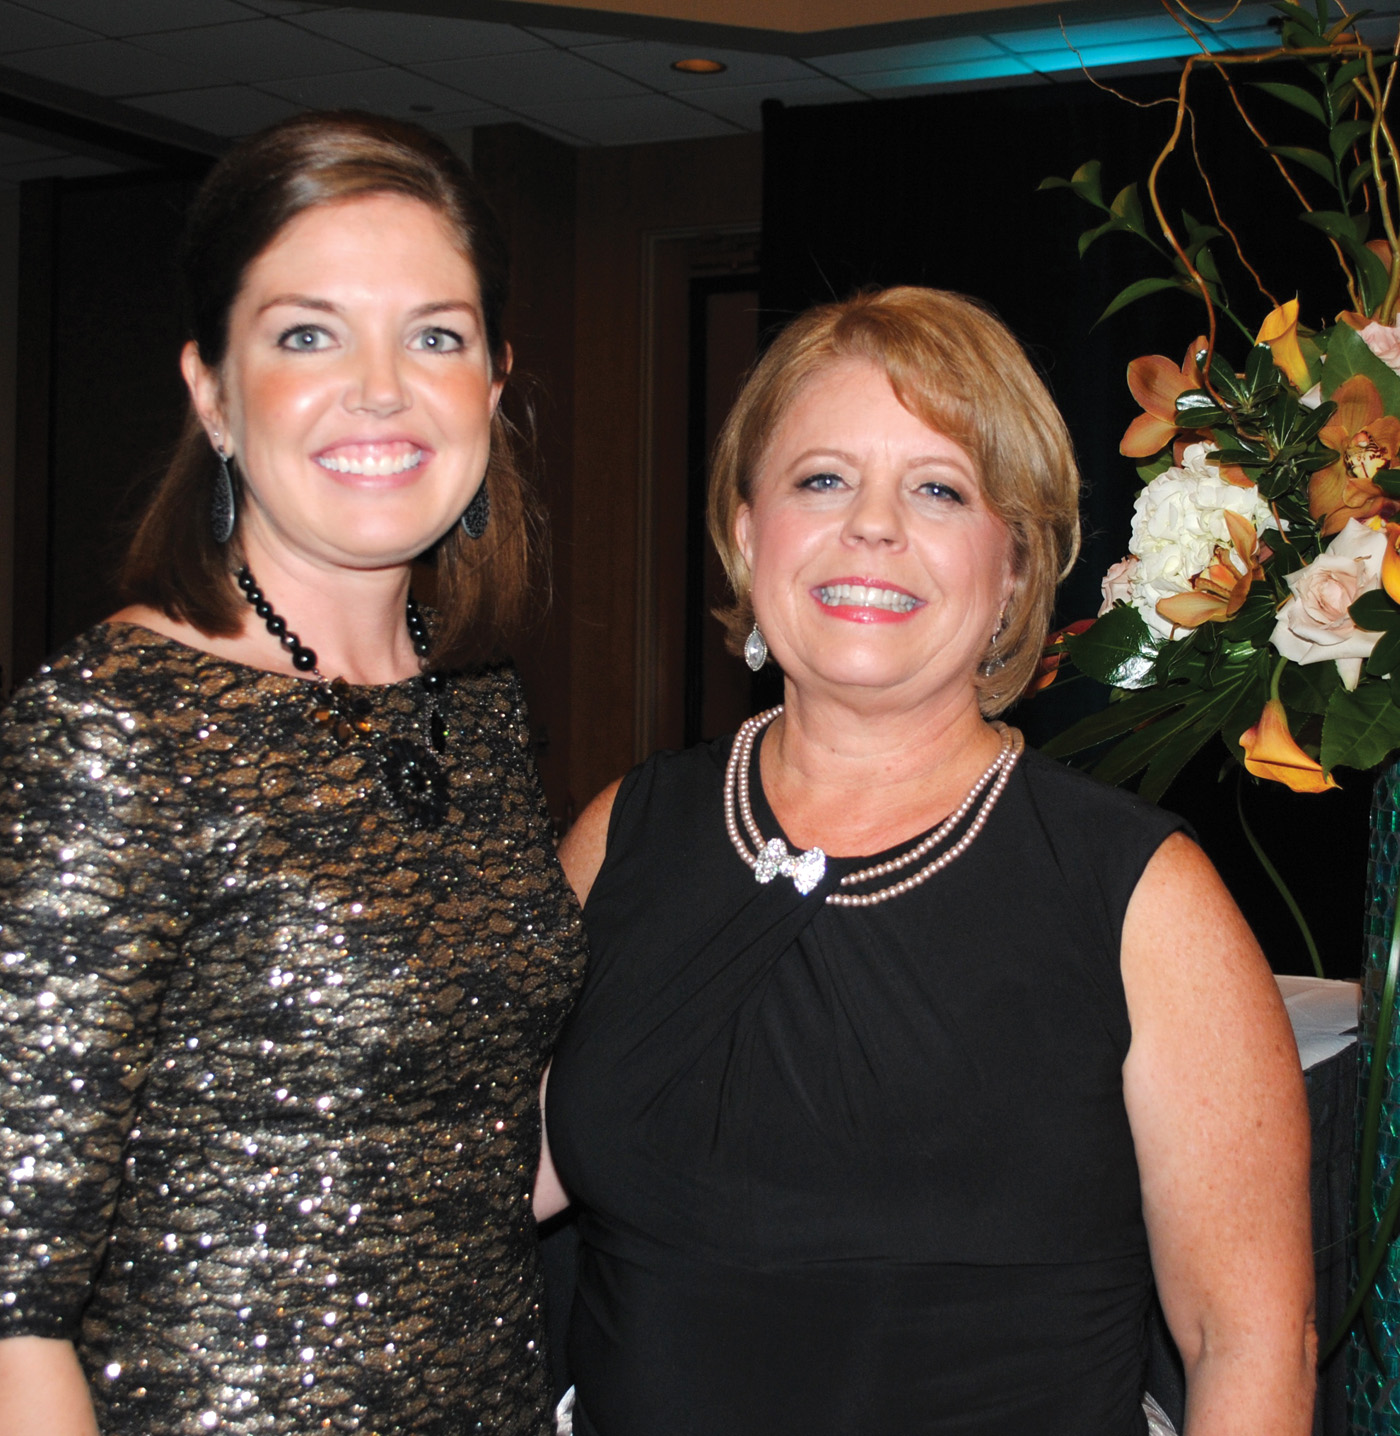 CCEF Executive Director Kaci Hanson, left, congratulates Gala Chairman Teresa Vencil on a very successful evening.